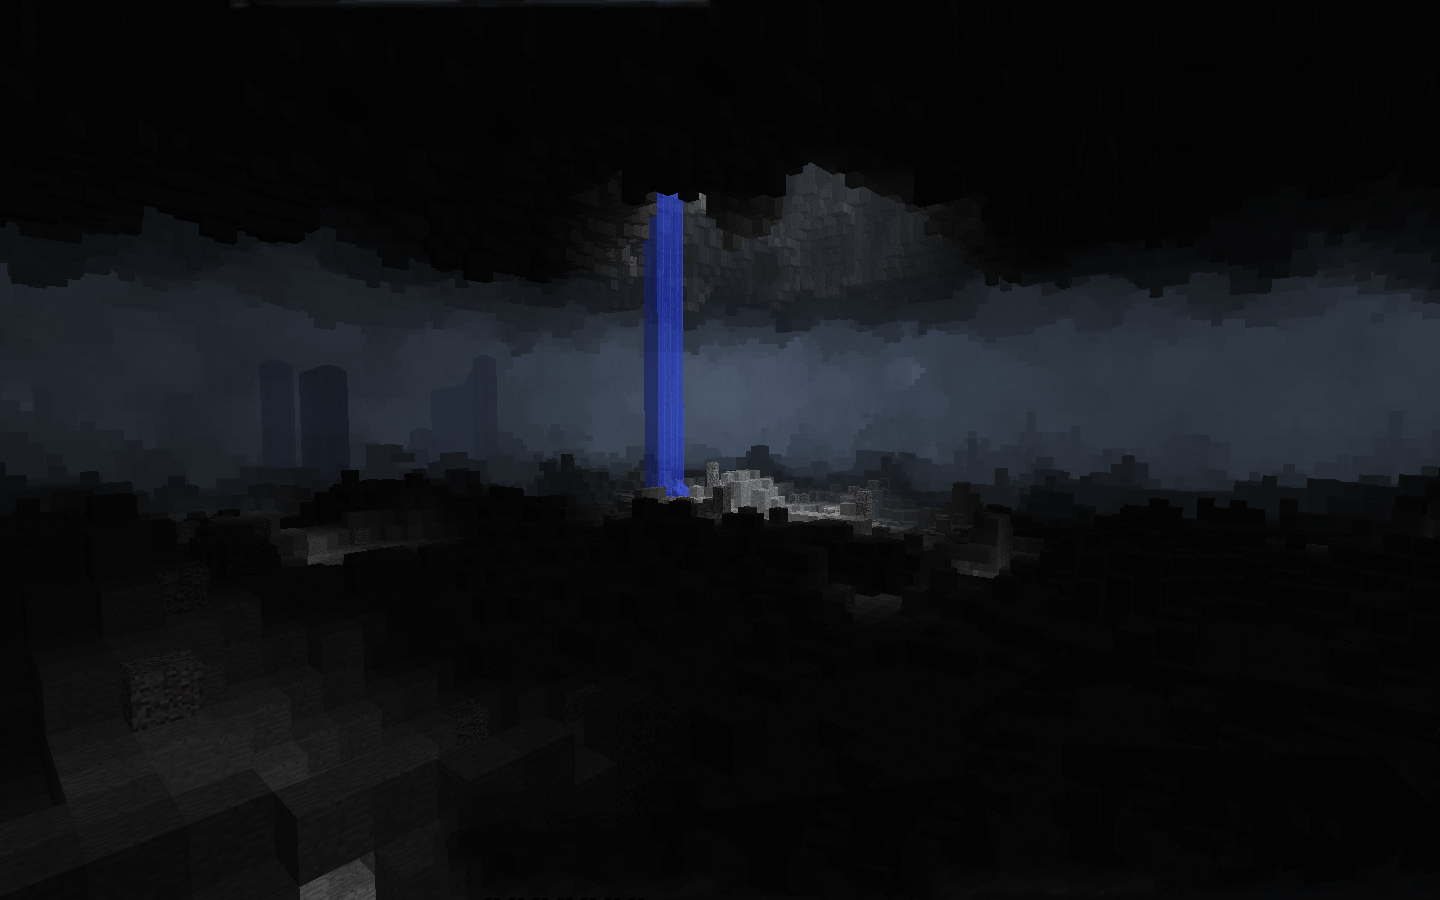 Epic Minecraft Backgrounds 1440x900